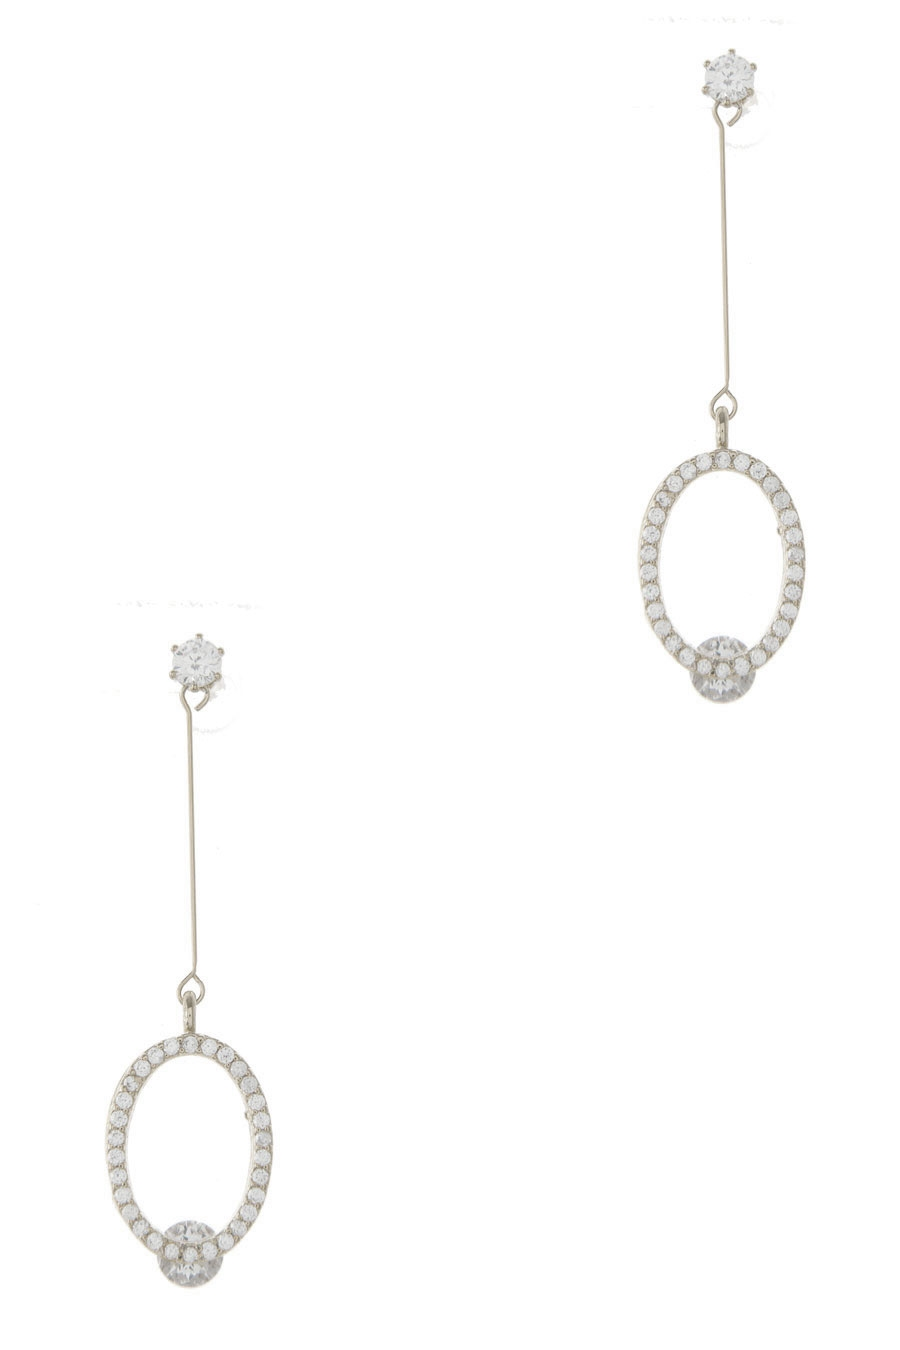 OVAL PAVE CZ DROP EARRING - orangeshine.com